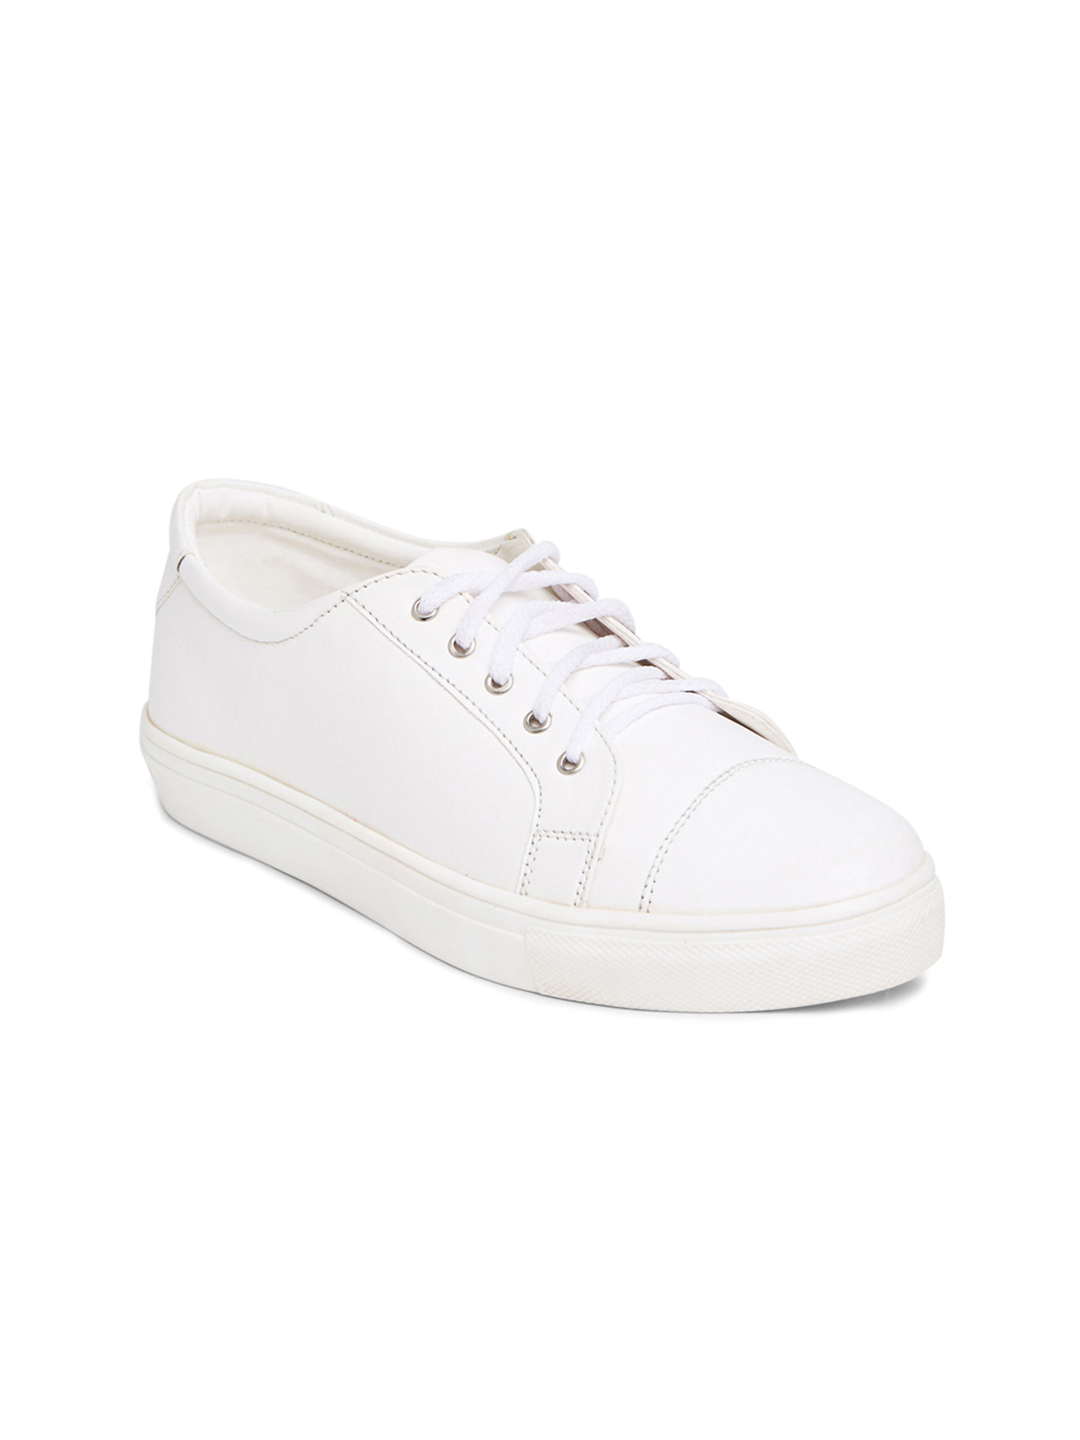 White shoes don't have to be limited to your plimsolls and sneakers, there's a variety of dressier options available to you. Don't let the colour intimidate you. Let us help you navigate the tricky world of wearing white shoes to keep you looking style savvy.